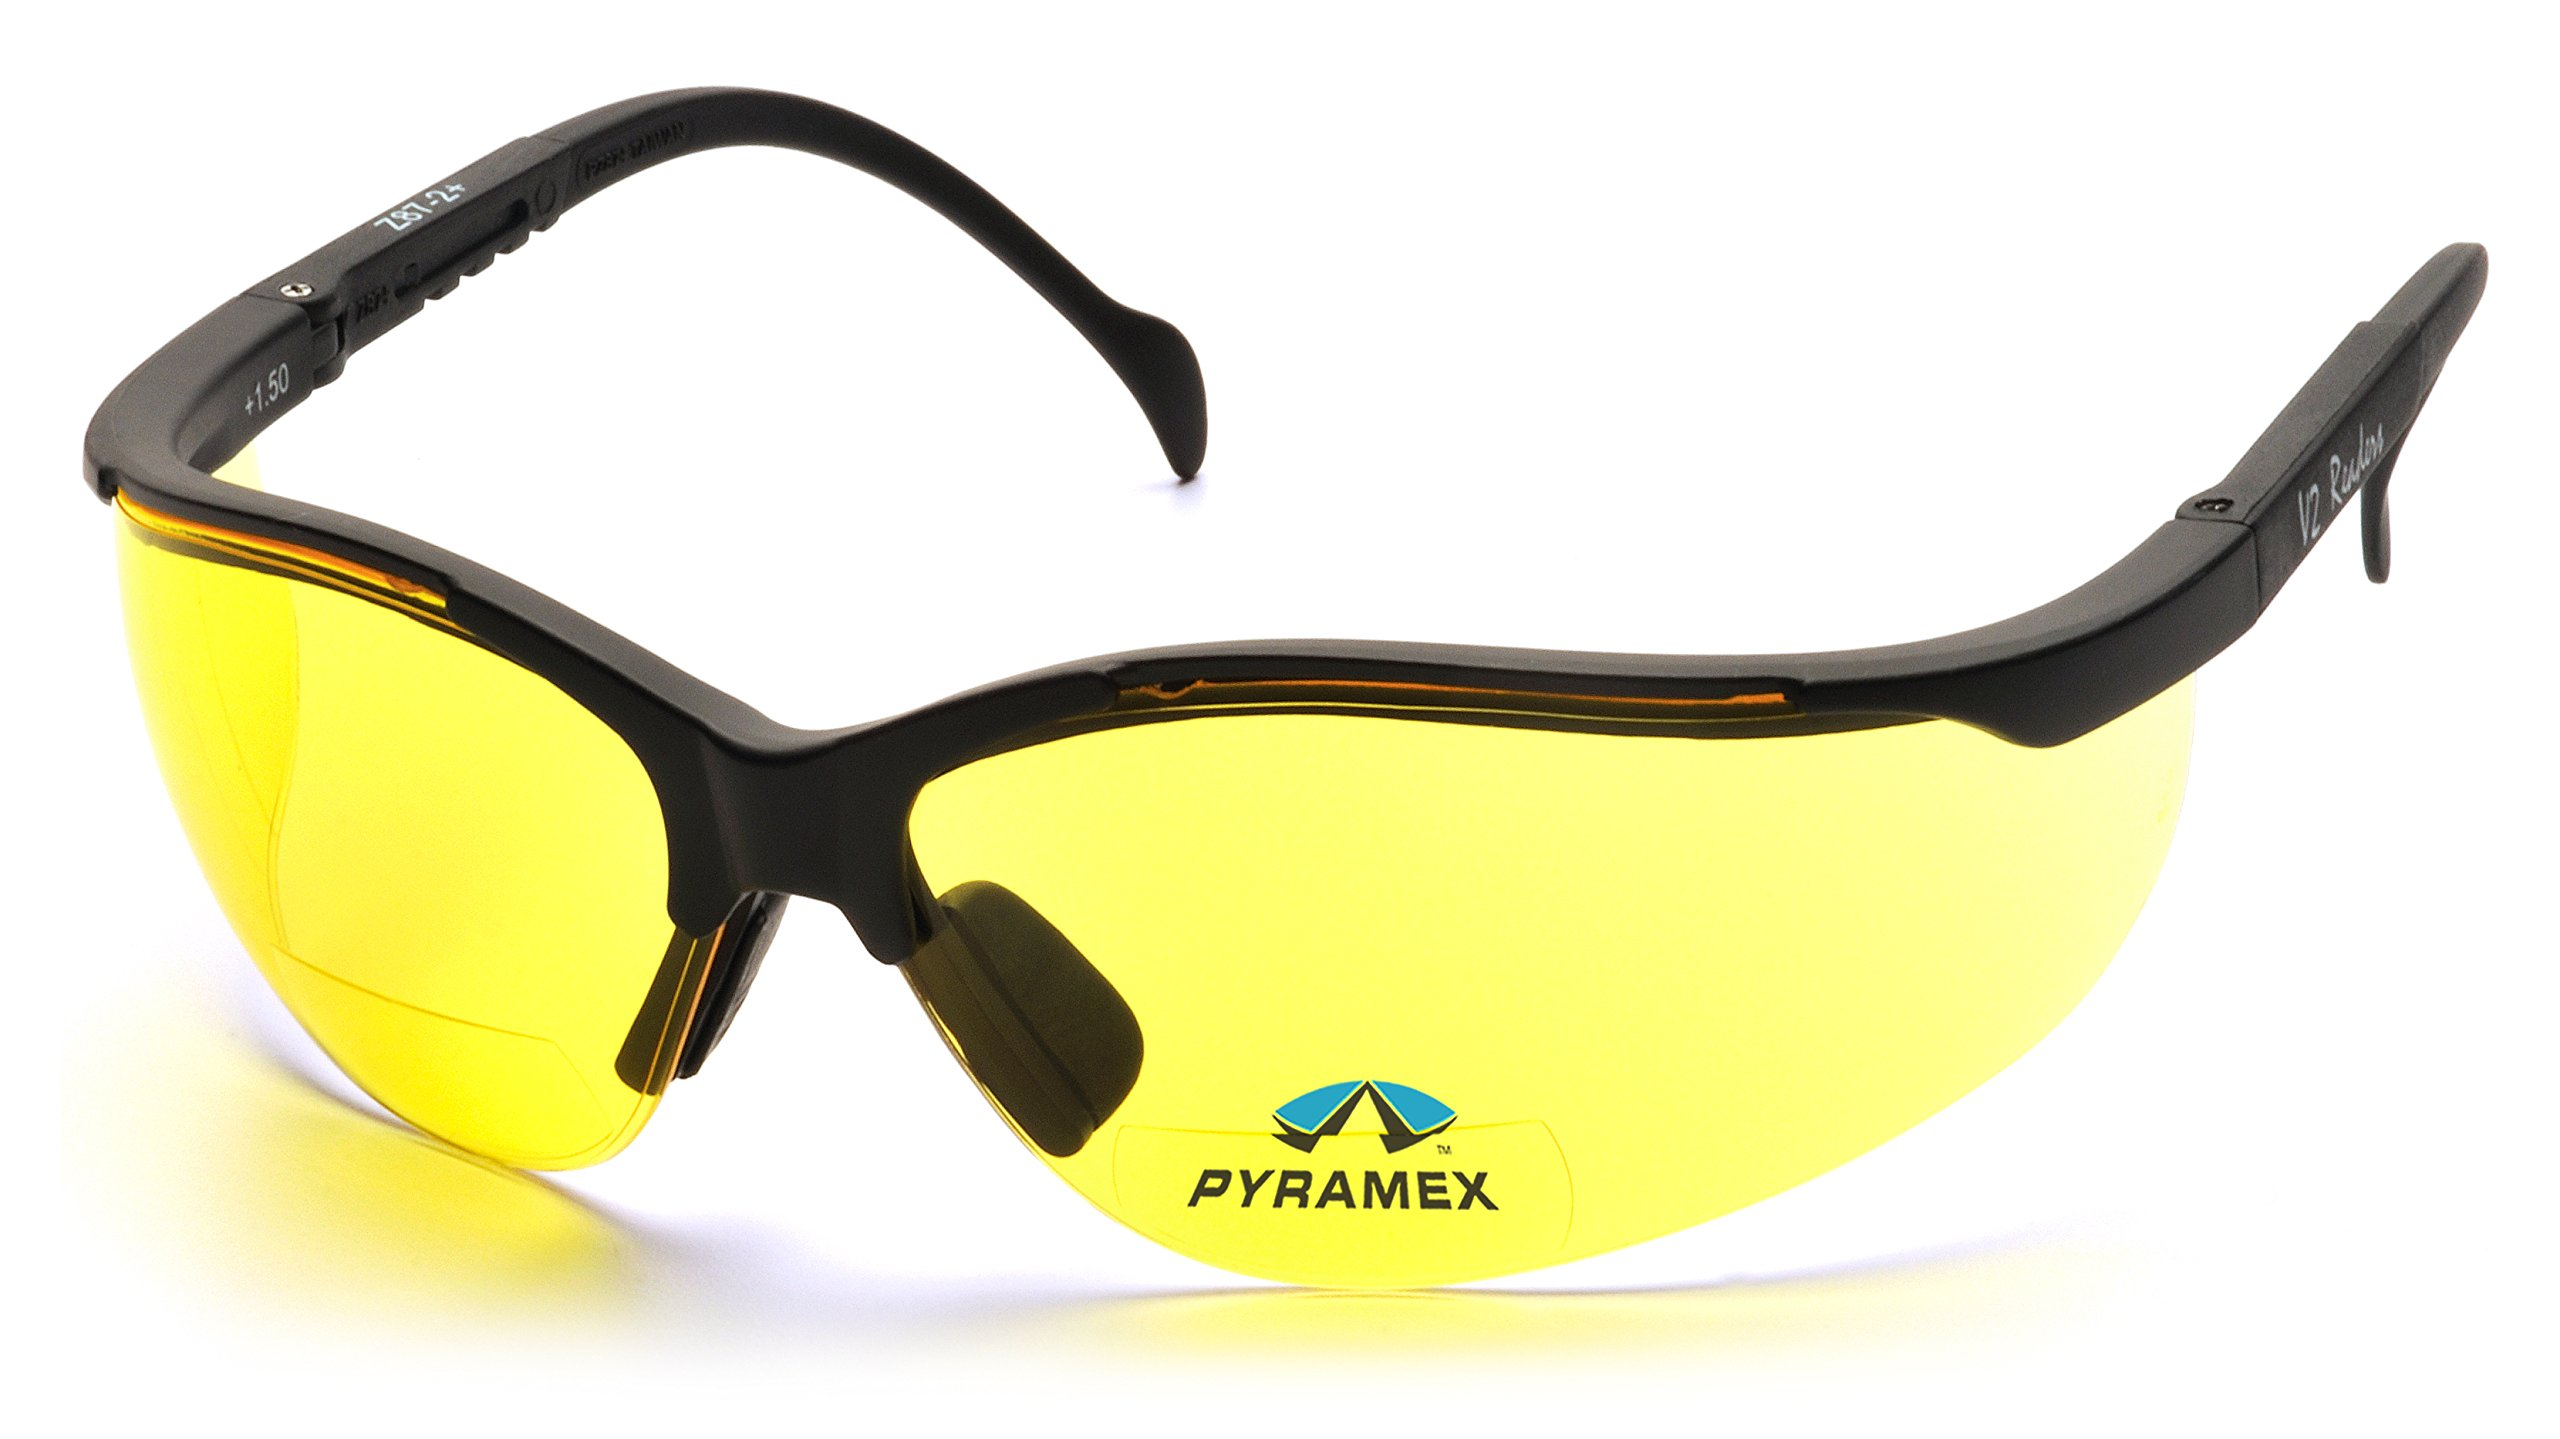 Pyramex V2 Bifocal Reader Safety Glasses Protective Eyewear, 2.0 Diopters, Amber